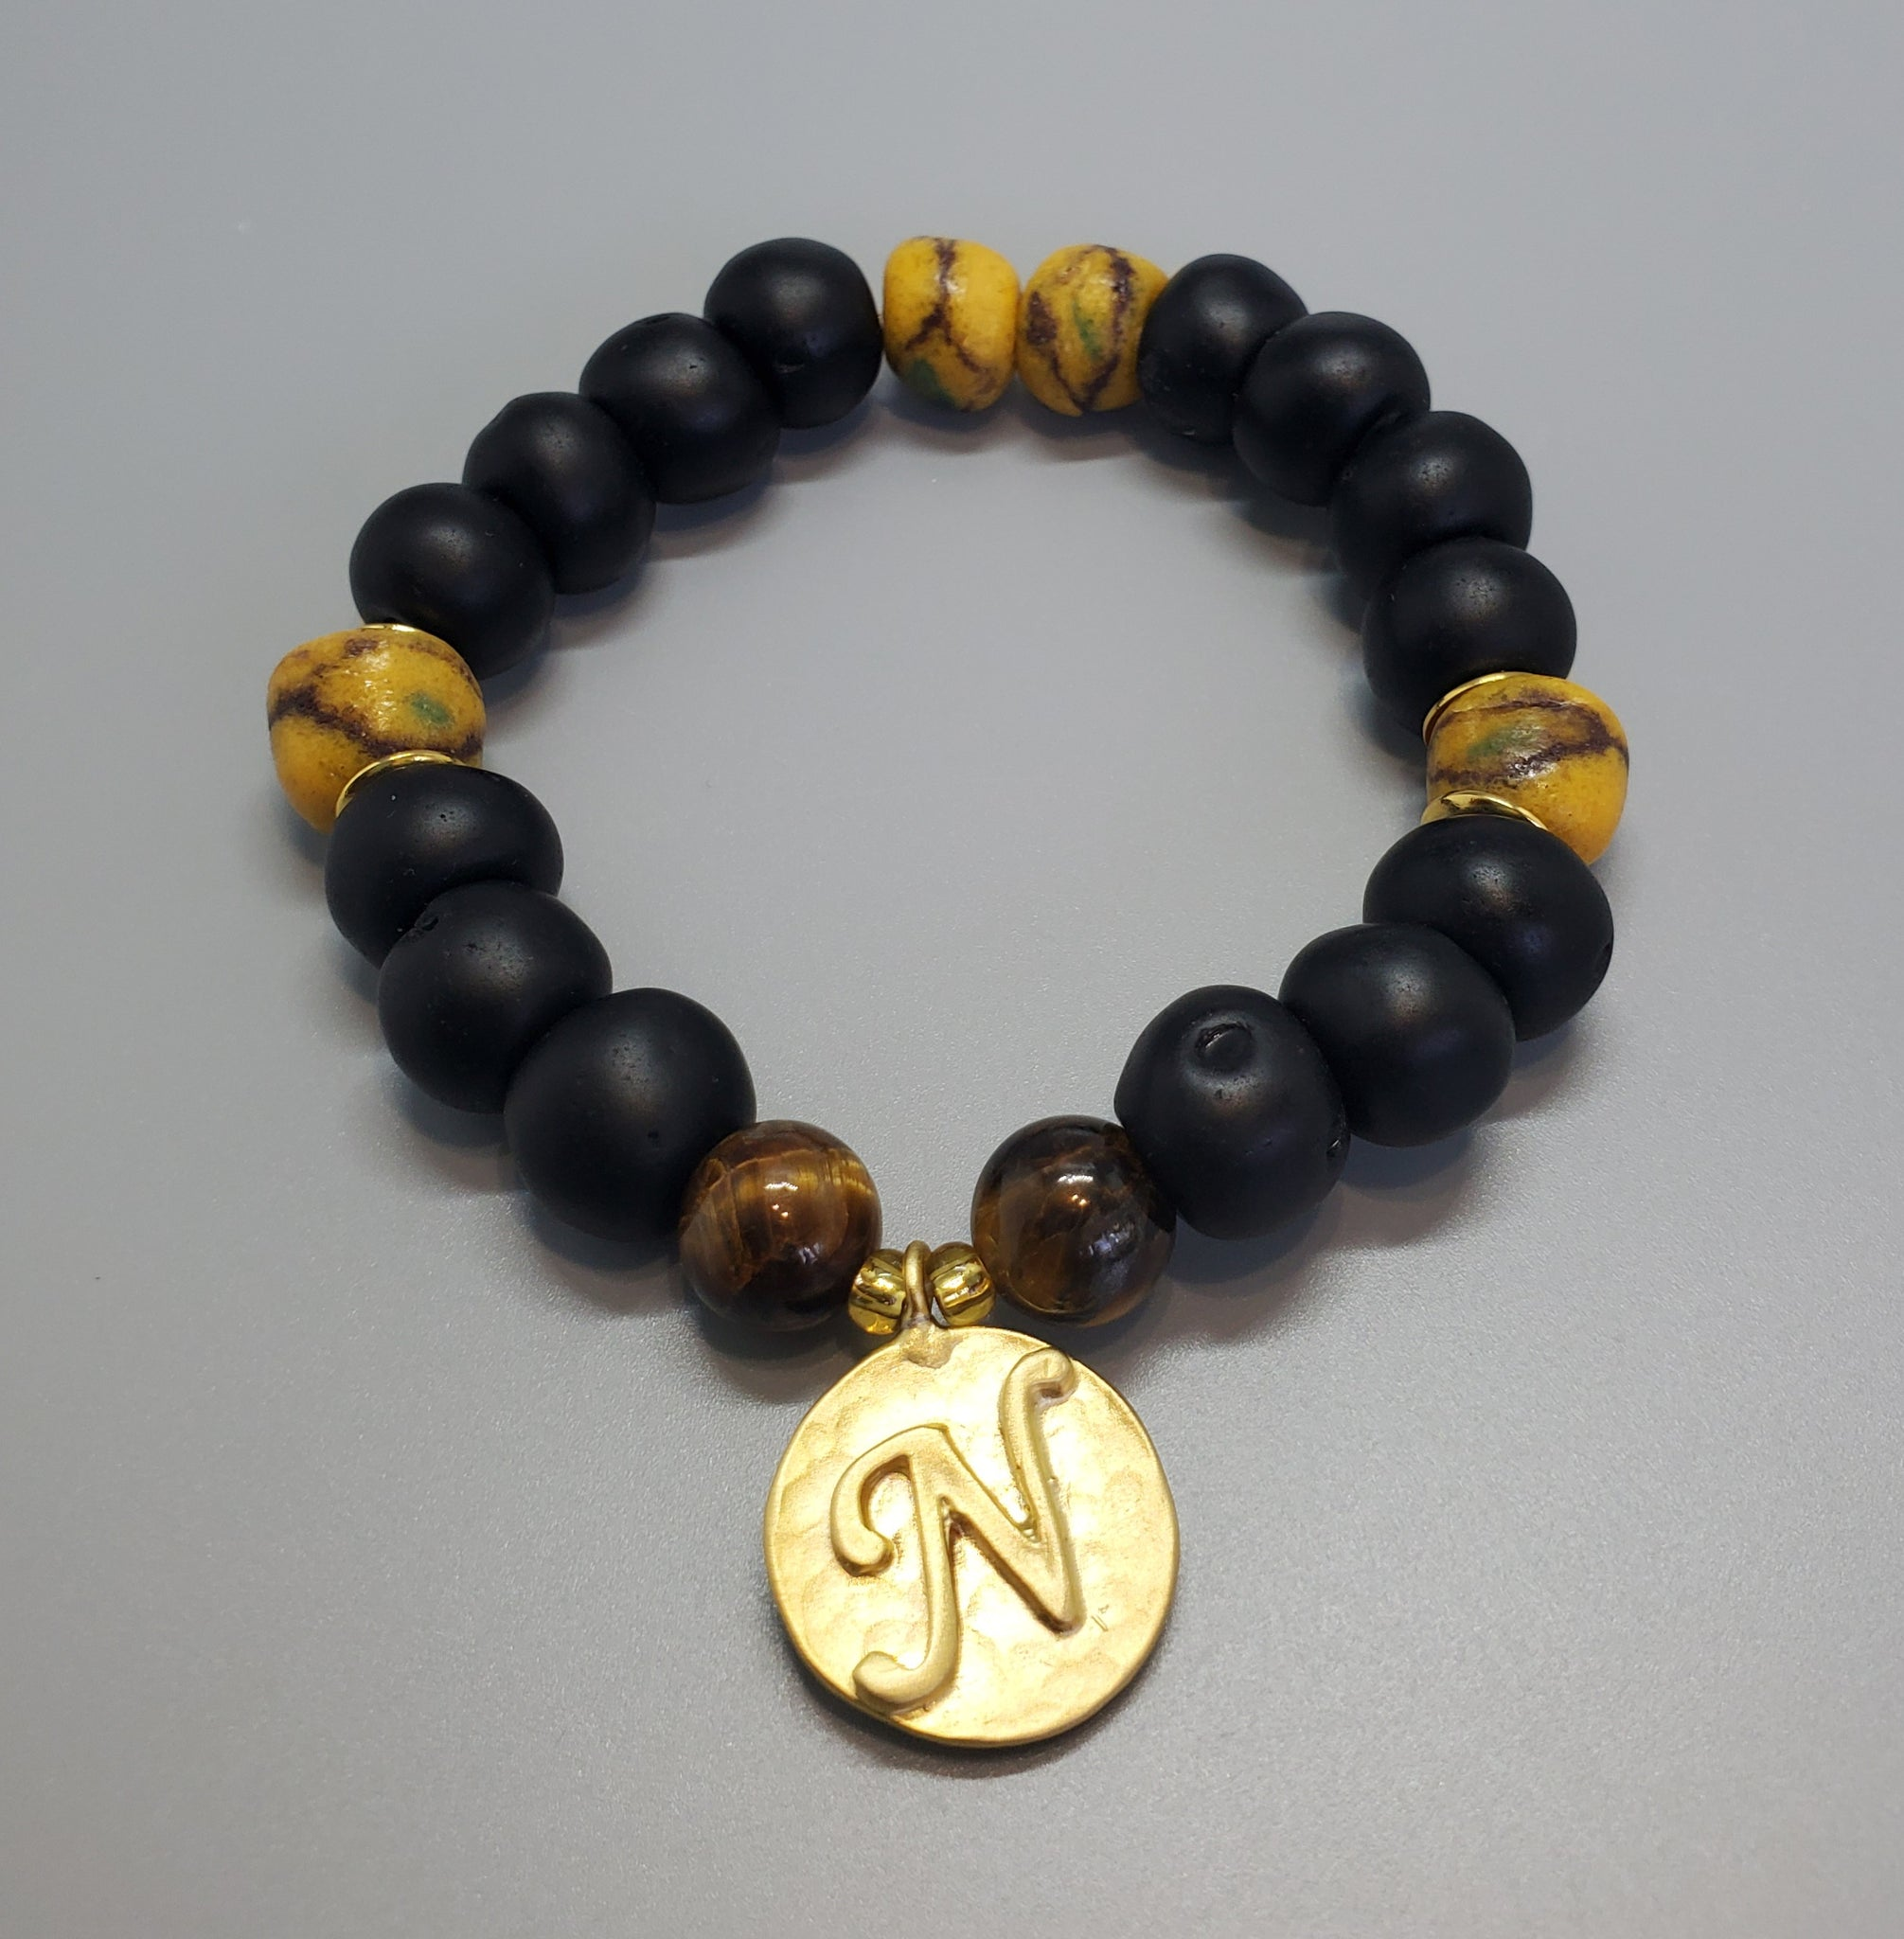 "Black, Must. Krobo Beads, Tiger Eye, 22K Gold Plated Plated Brass ""N"" Charm, Brass, Unisex Stretch Bracelet"